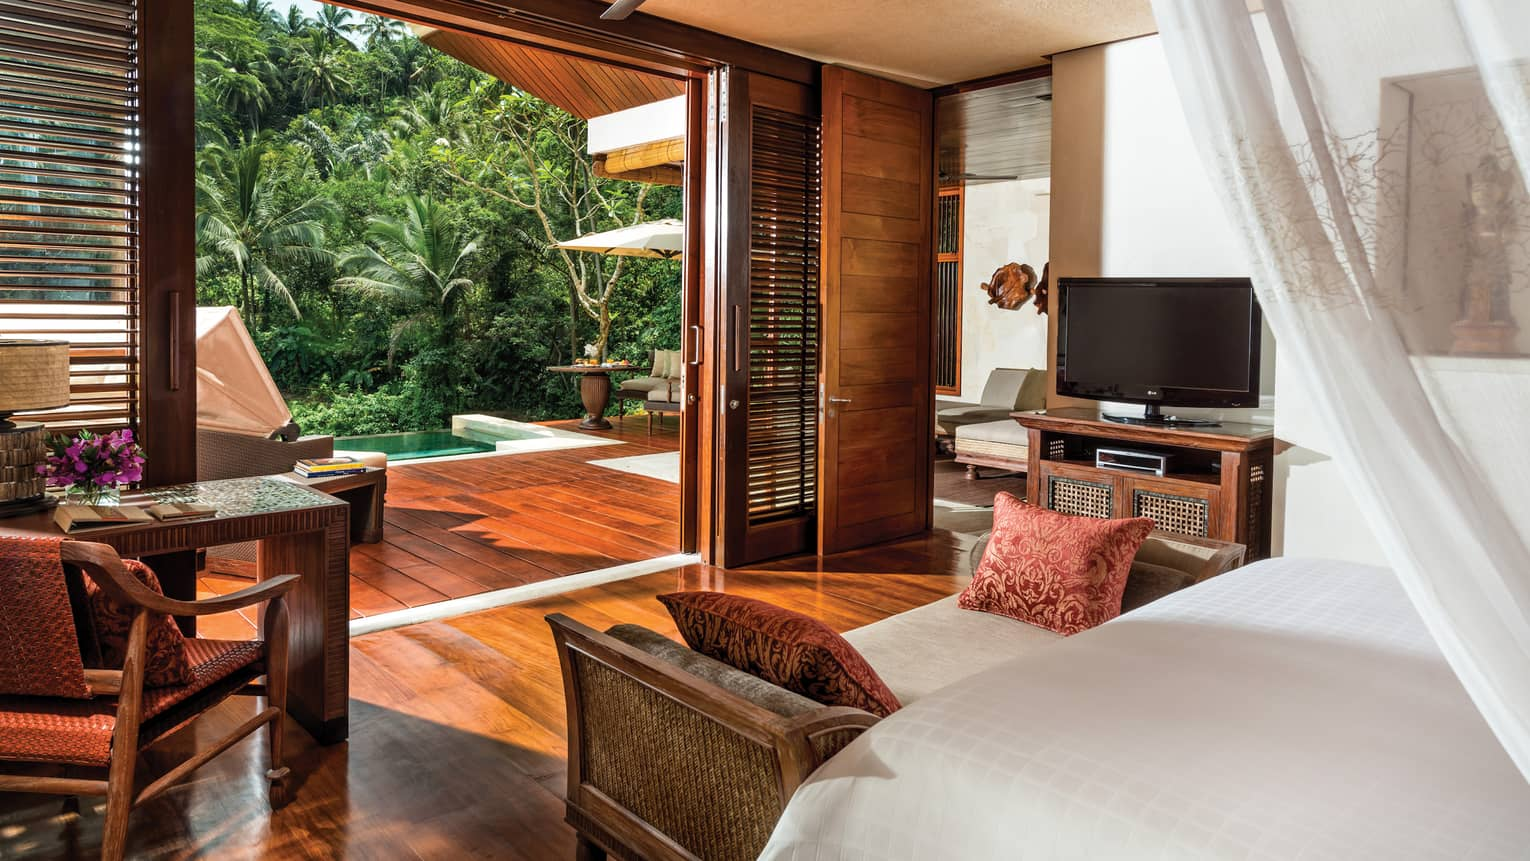 A Riverfront Villa overlooking a forest in Bali